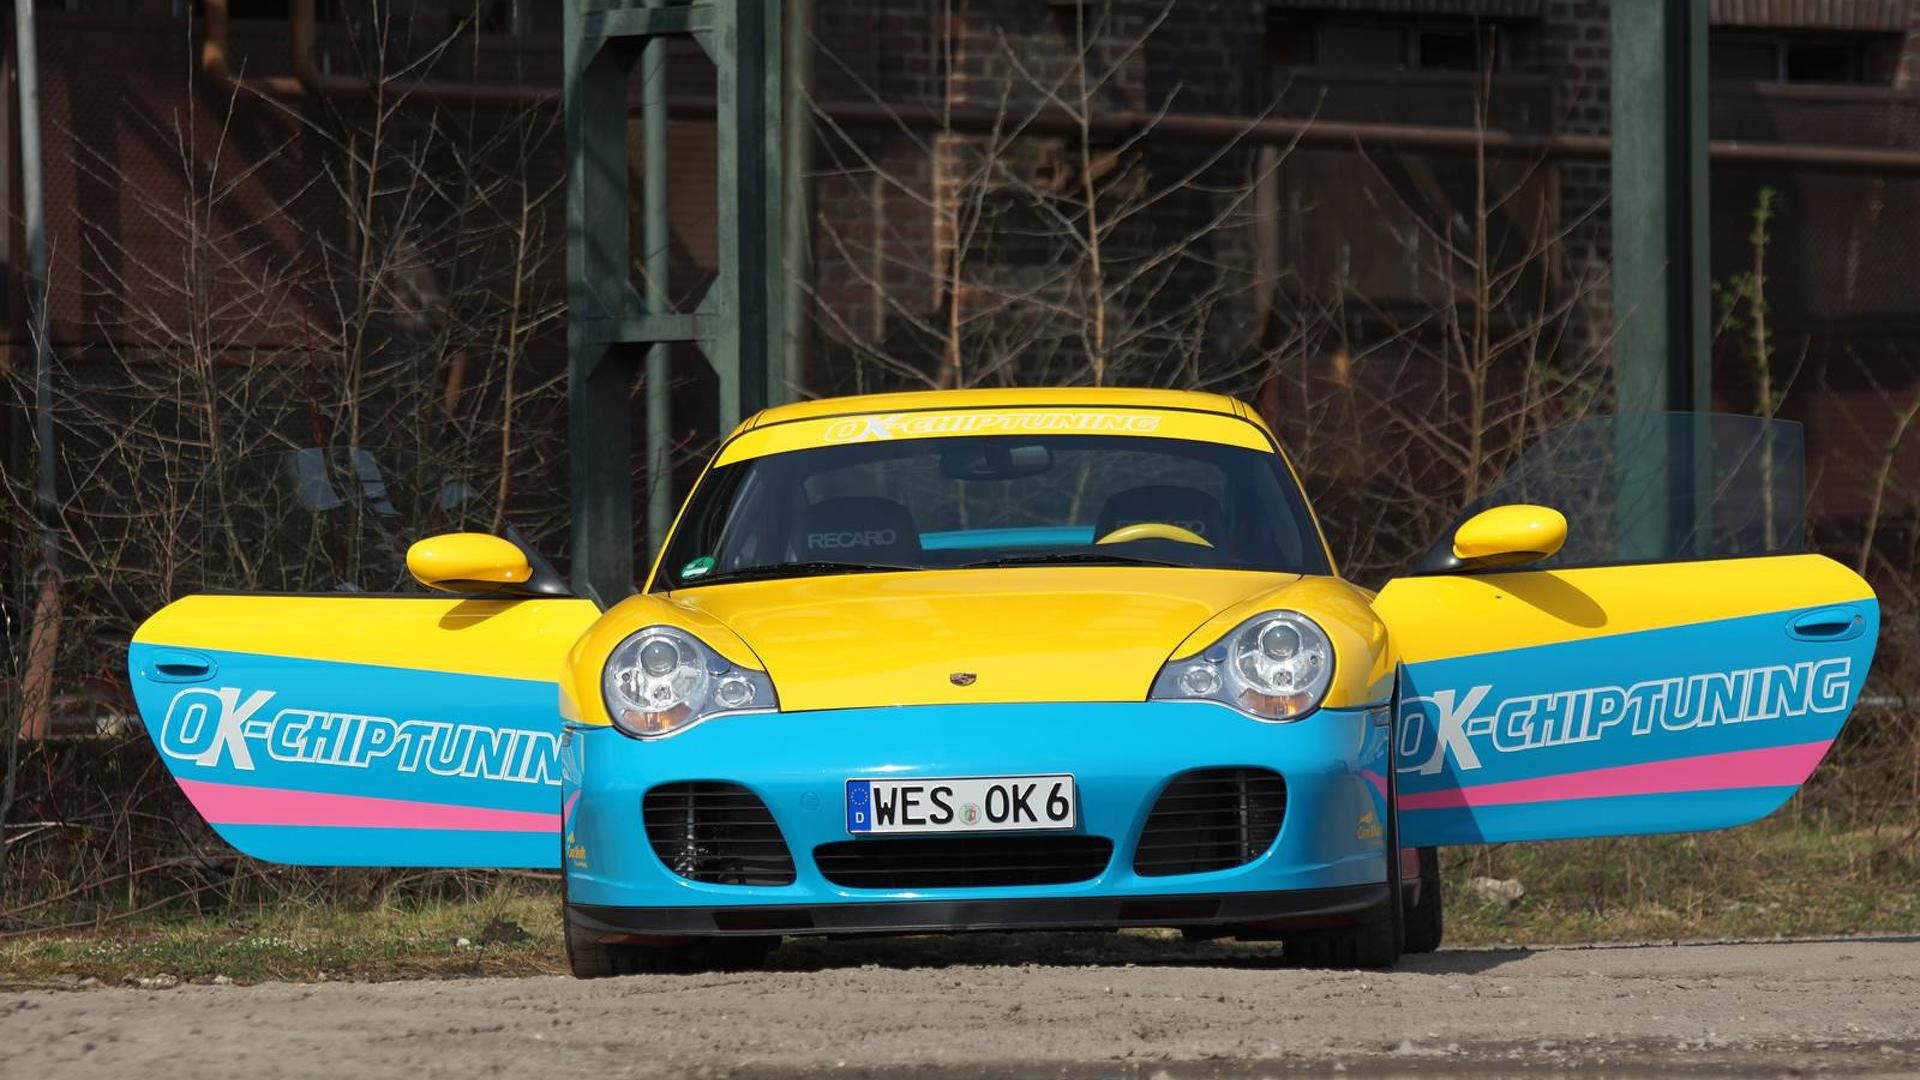 Porsche 996 Modified By Ok Chiptuning